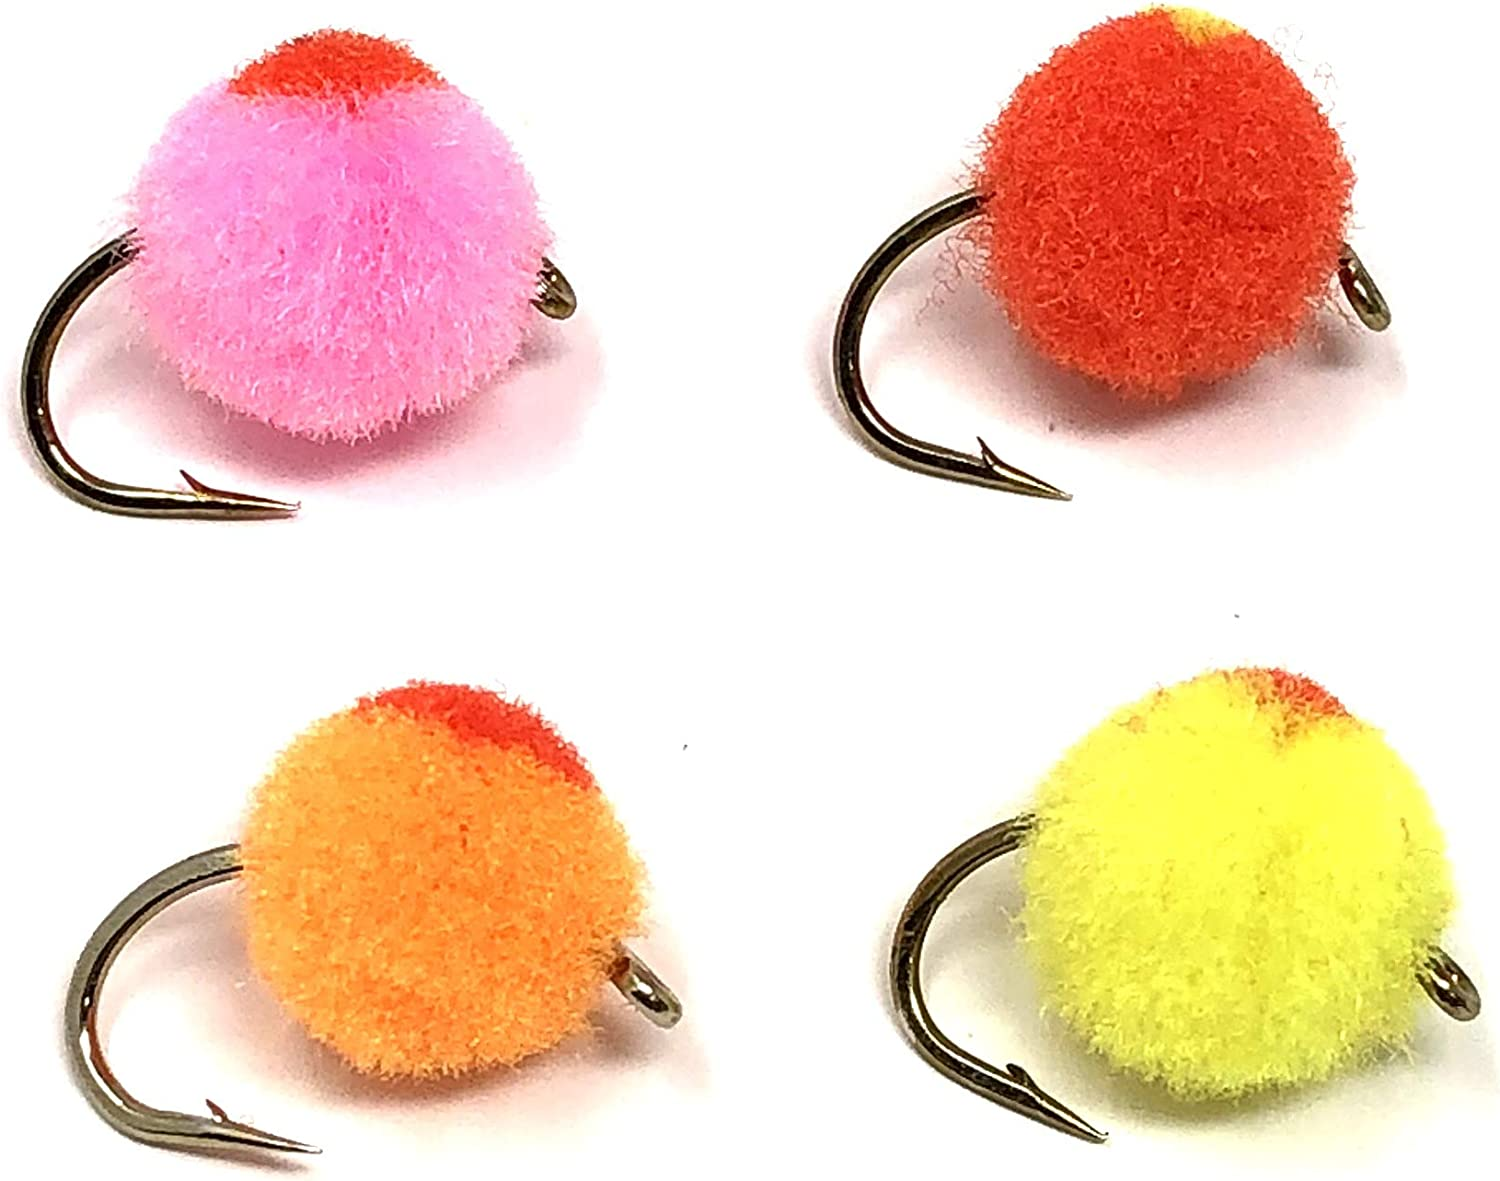 For Trout or Salmon Egg Fishing Fly 8 Pack Orange Eggs Mixed 8//10